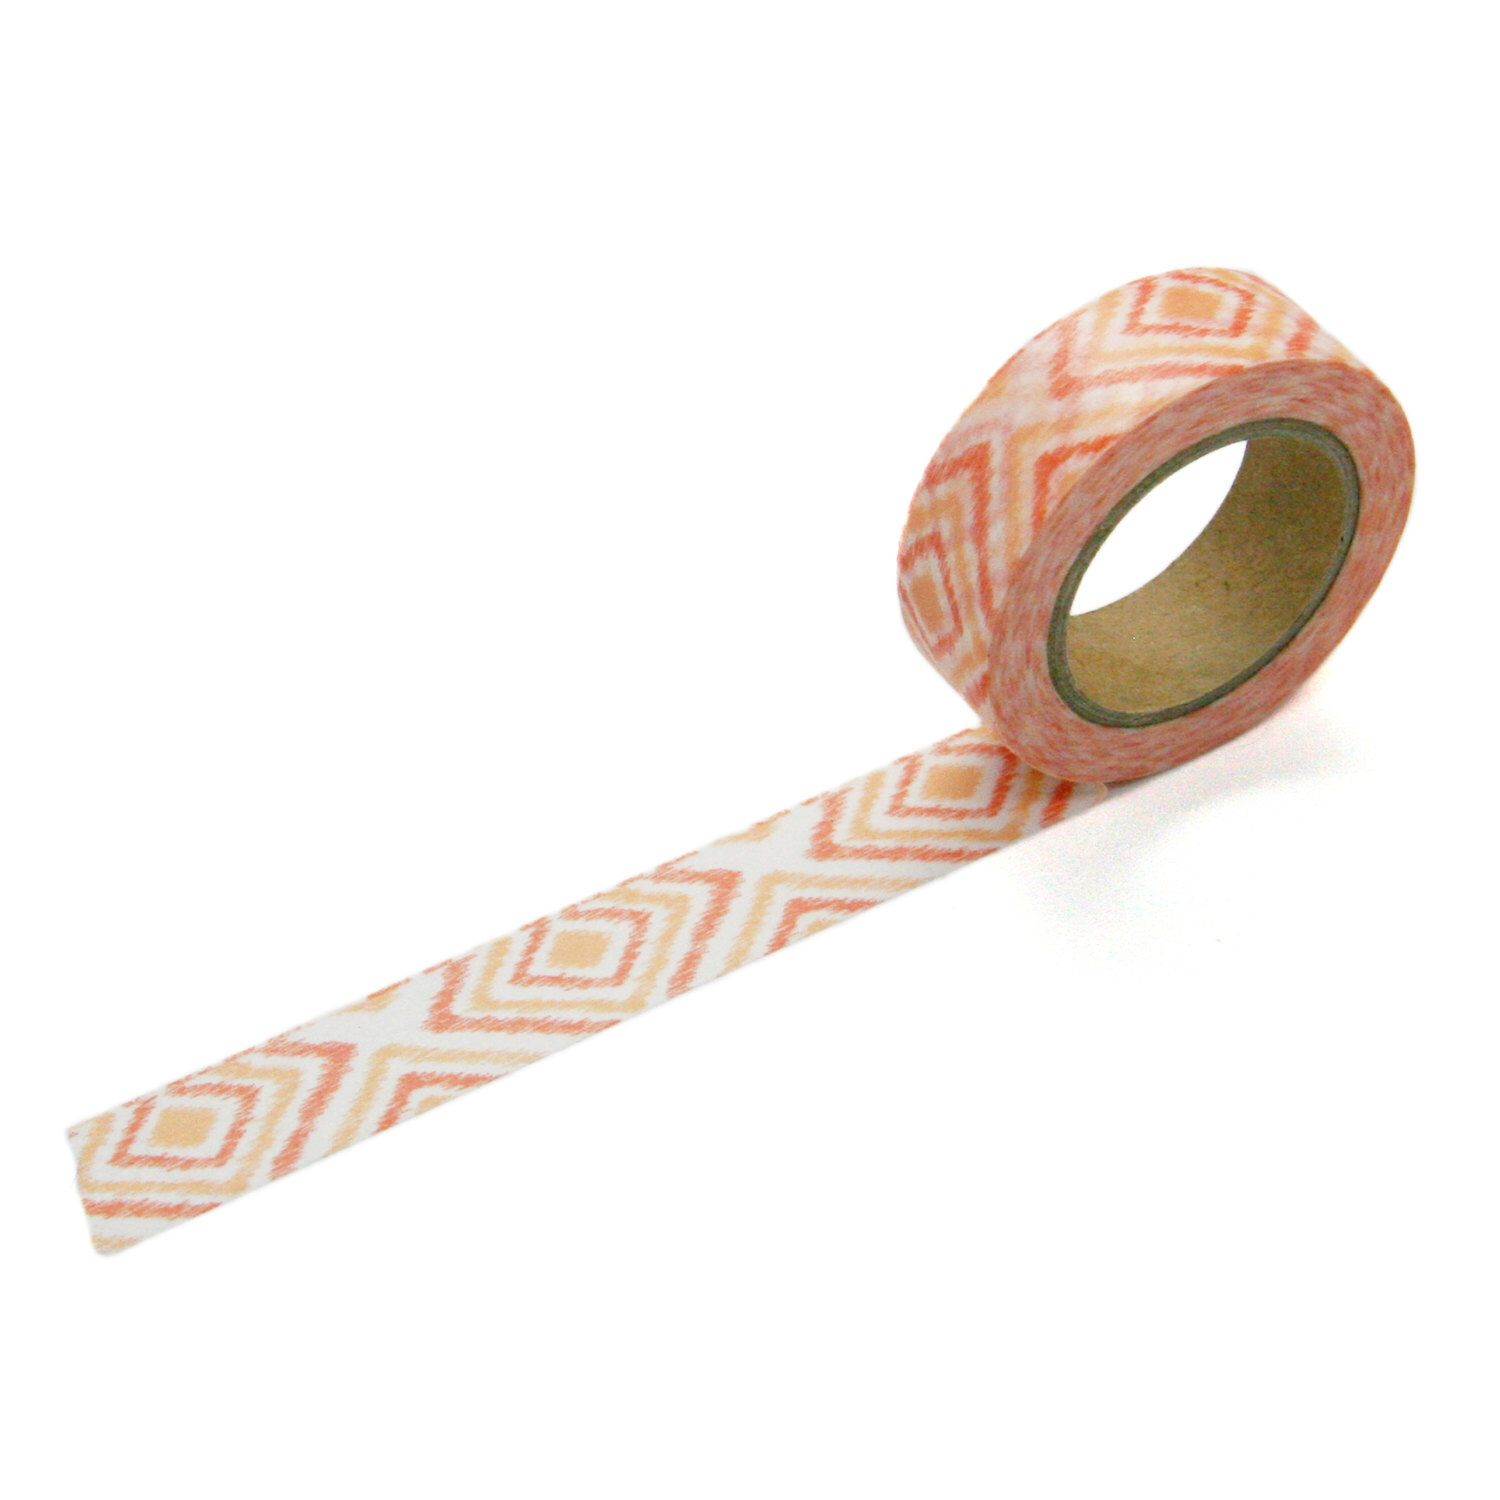 Ikat Diamond Pattern Washi Tape, Coral Fabric Tape, 15Mm X